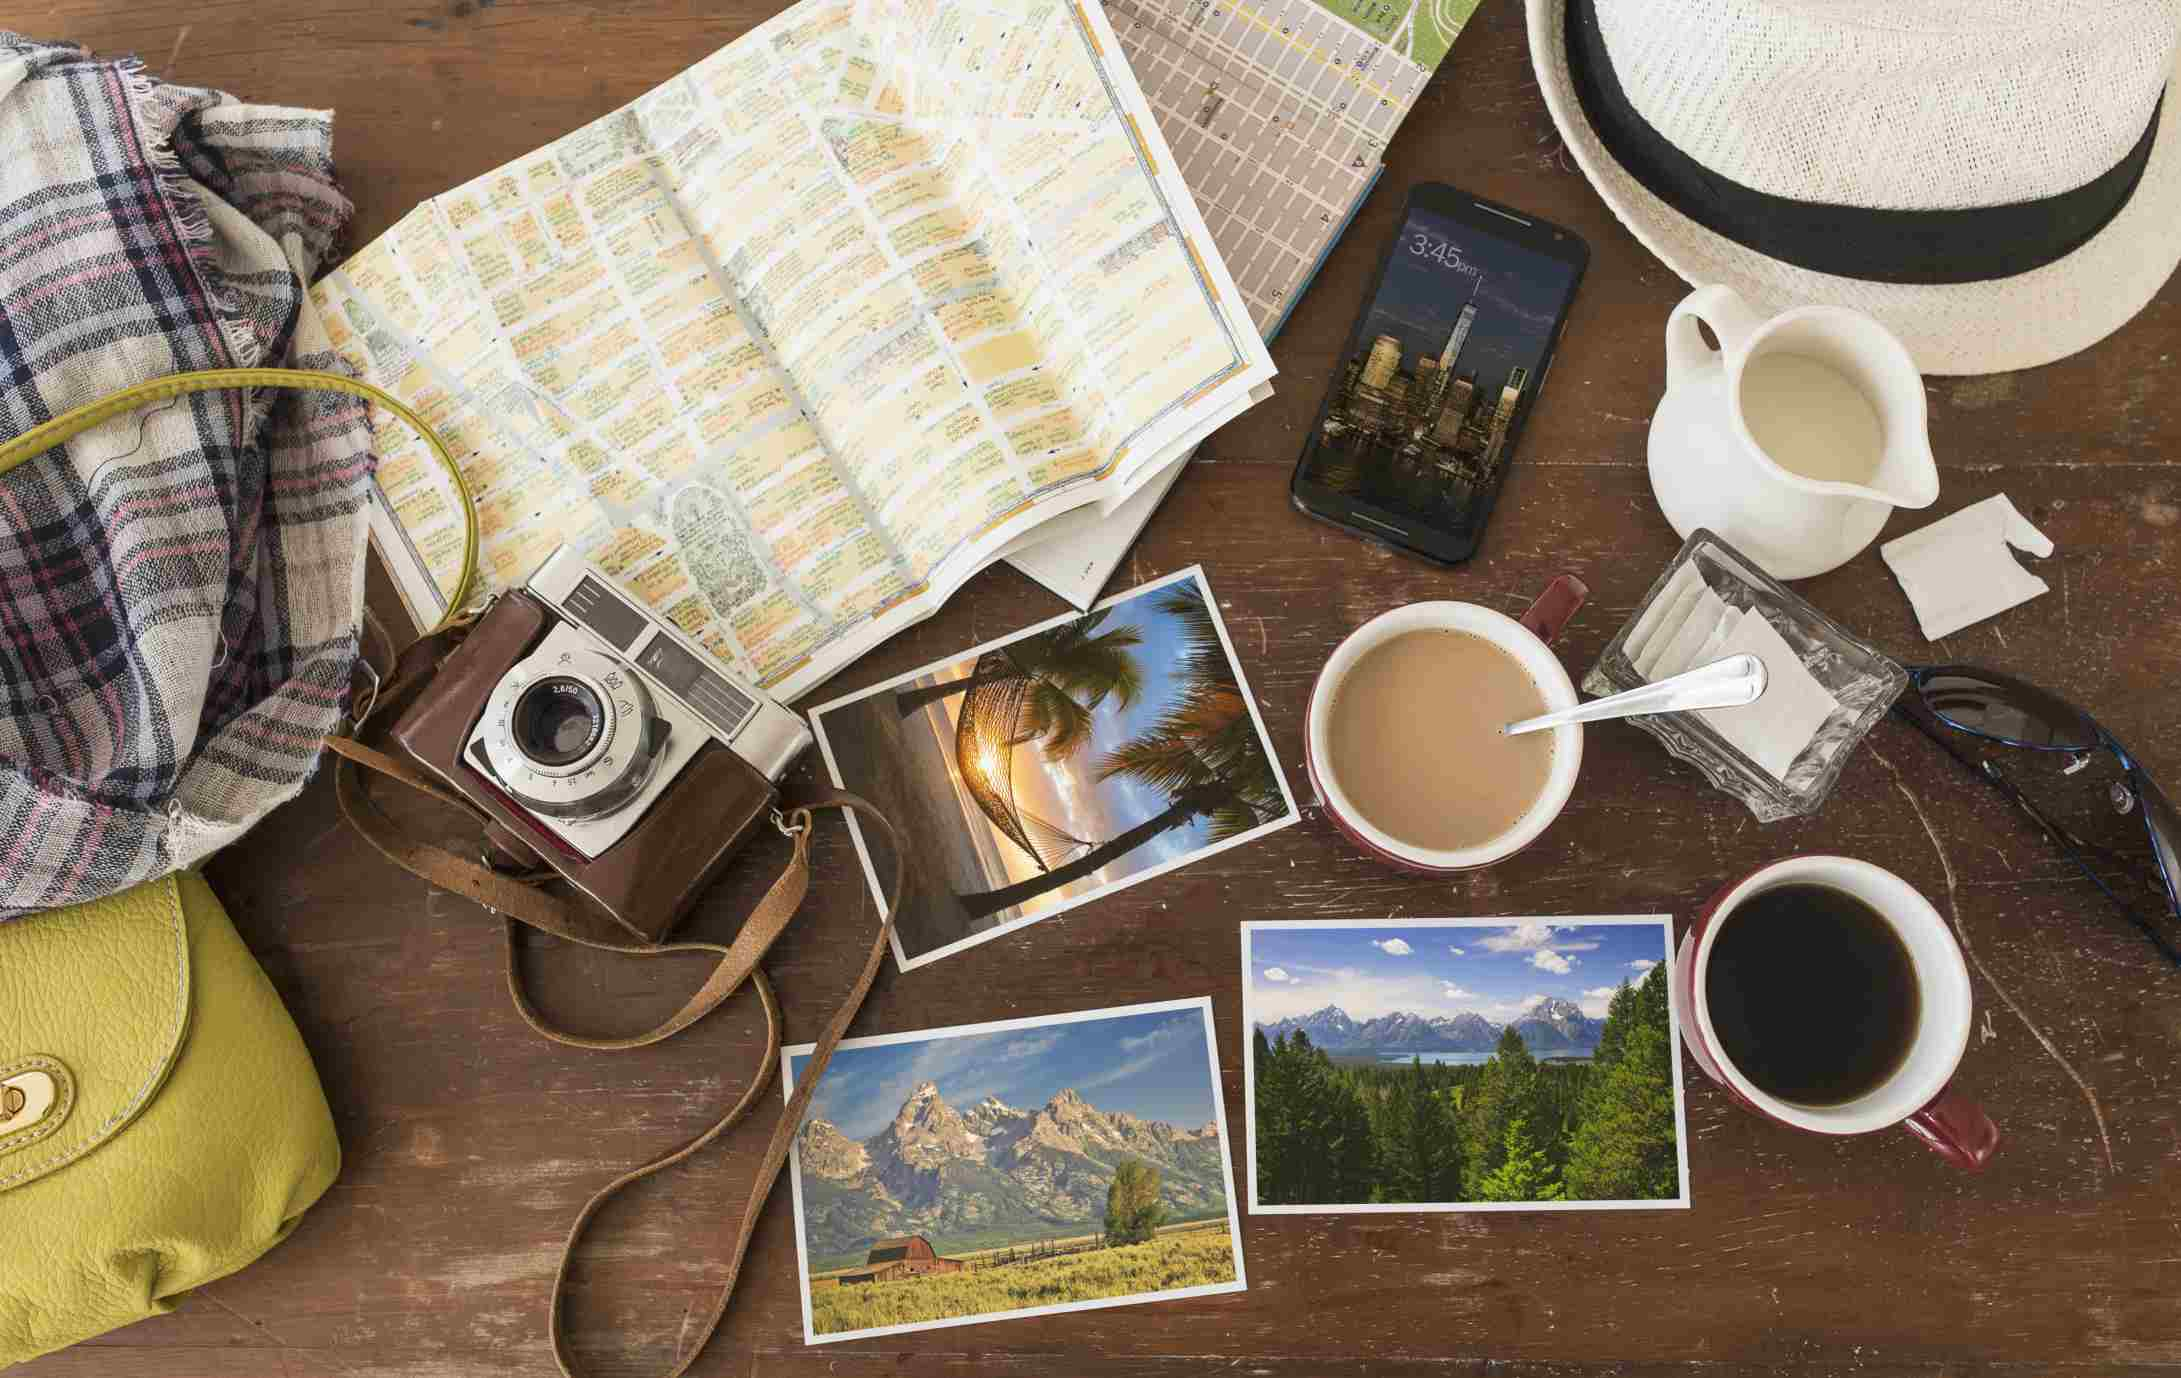 Travel Guides and Souvenirs